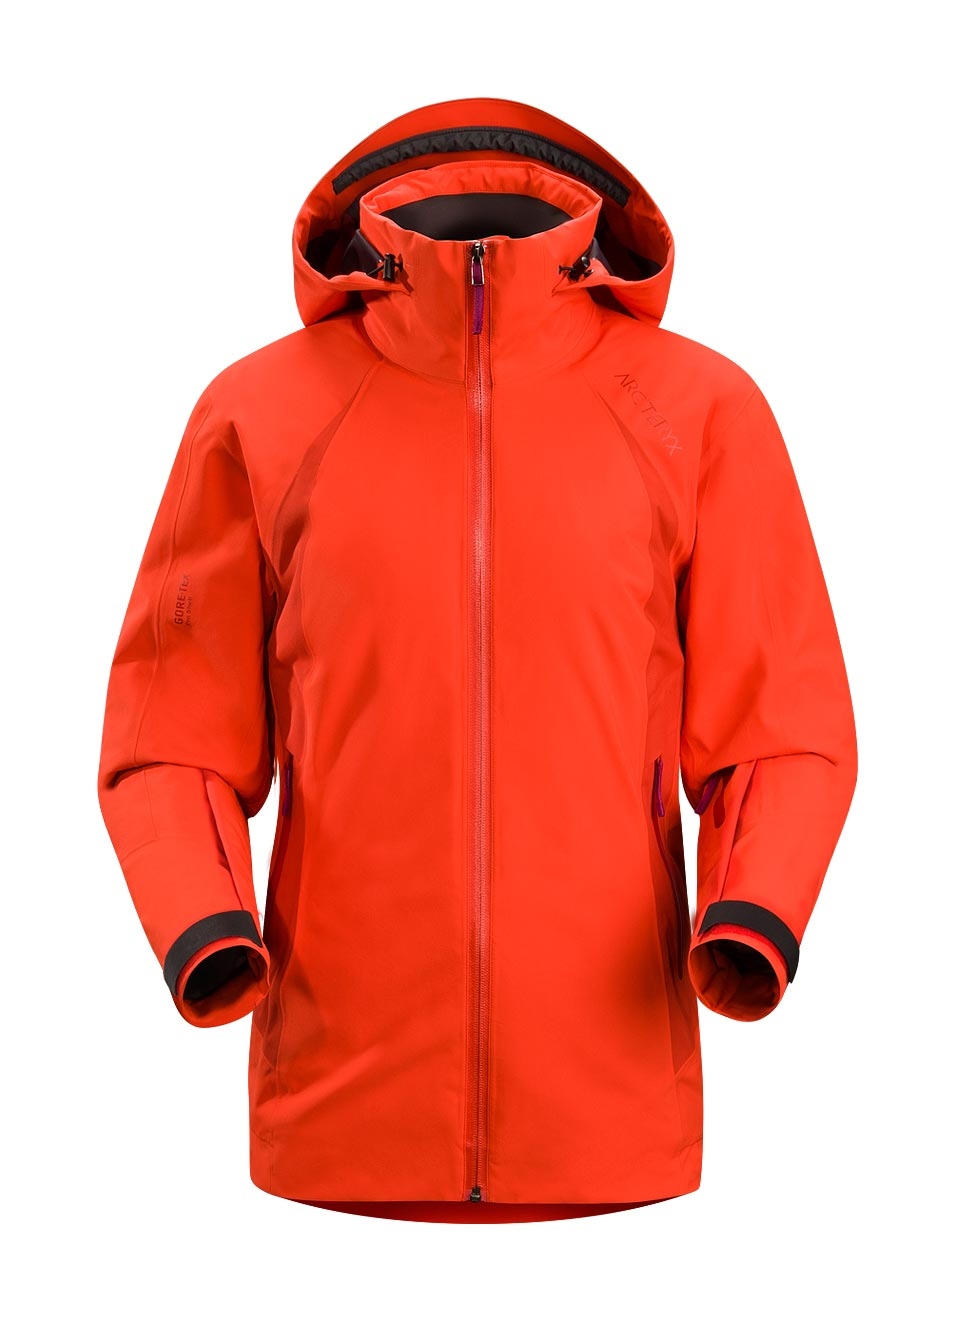 Arcteryx Jackets Women Poppy Moray Jacket